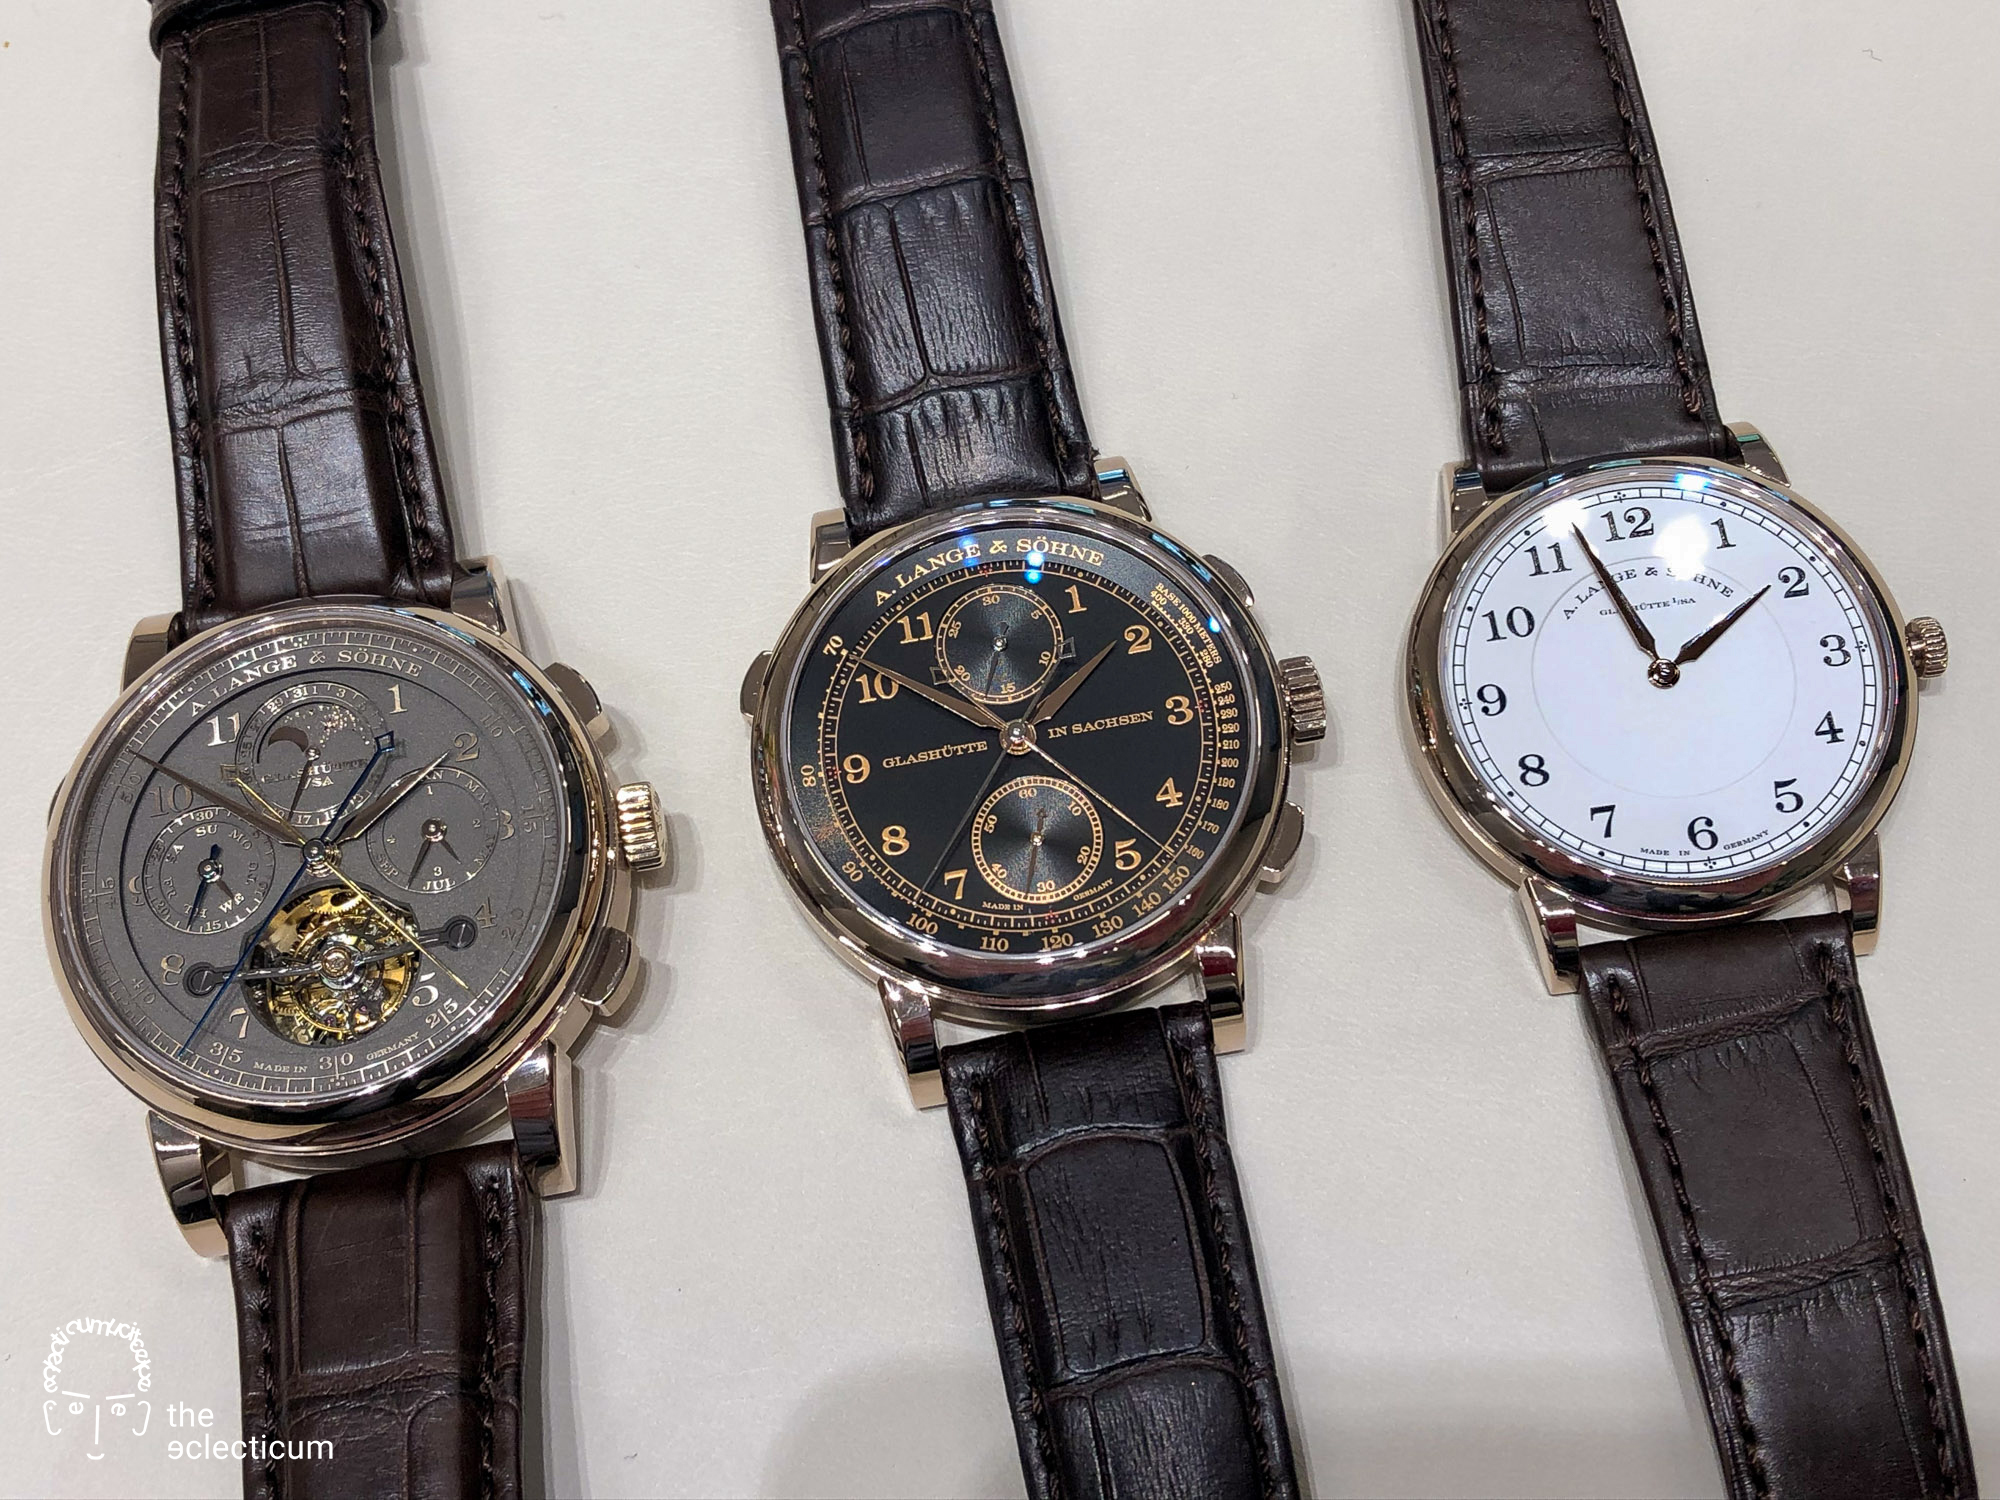 Homage to F. A. Lange 1815 Honeygold 175th anniversary limited editions